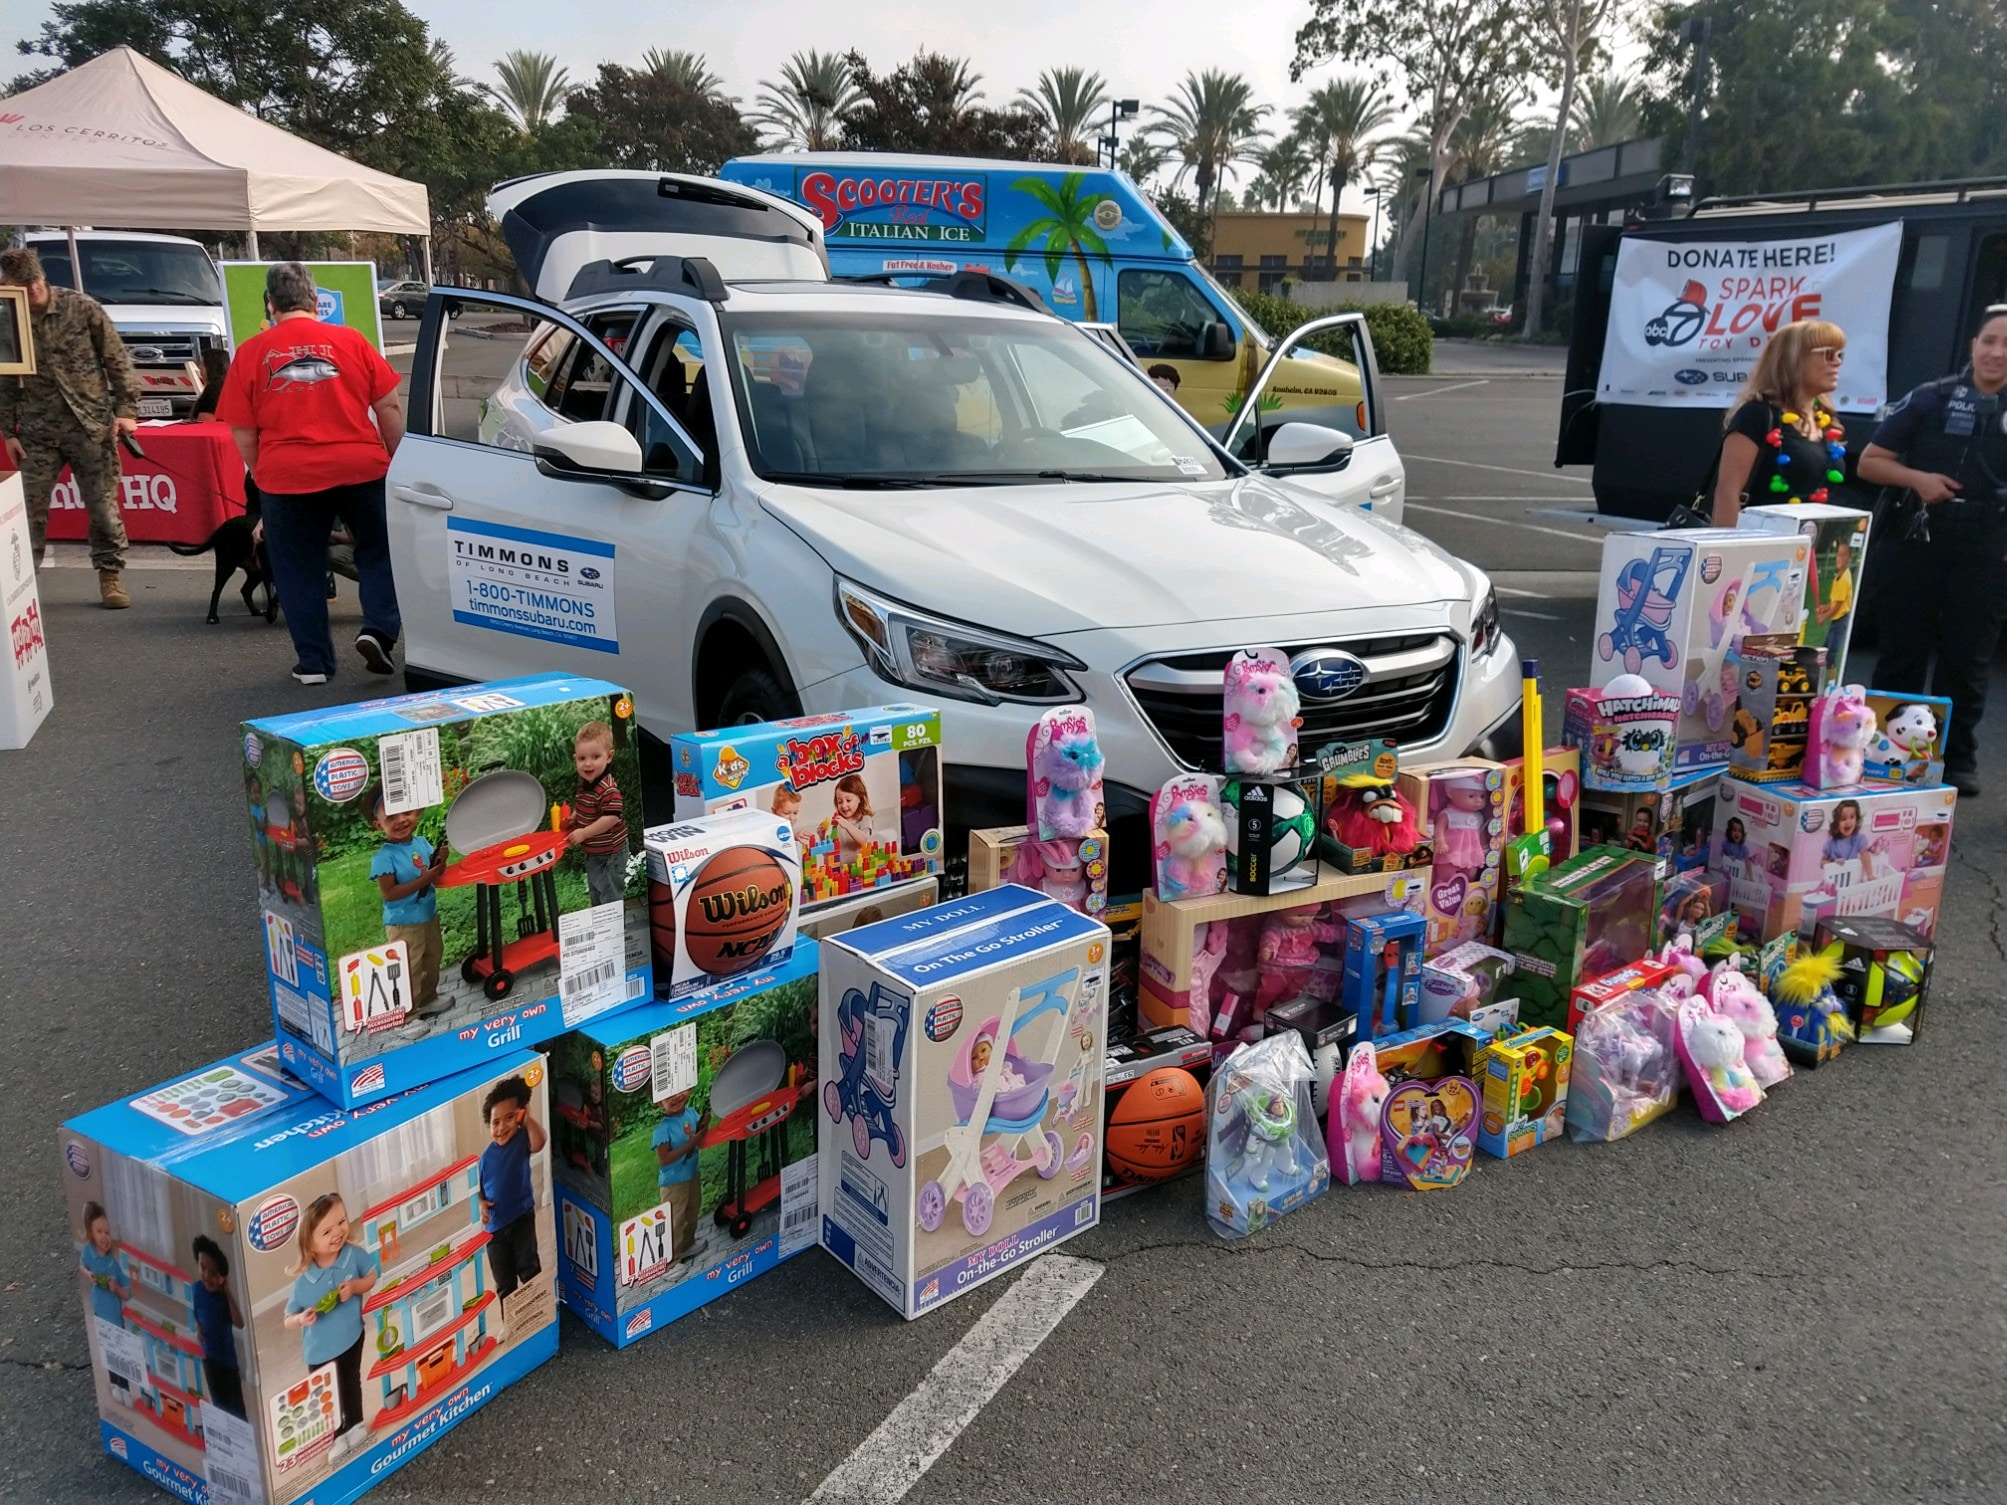 Timmons of Long Beach proudly supports and participates in the ABC 7 Spark of Love Charity Toy Drive Event presented by Subaru